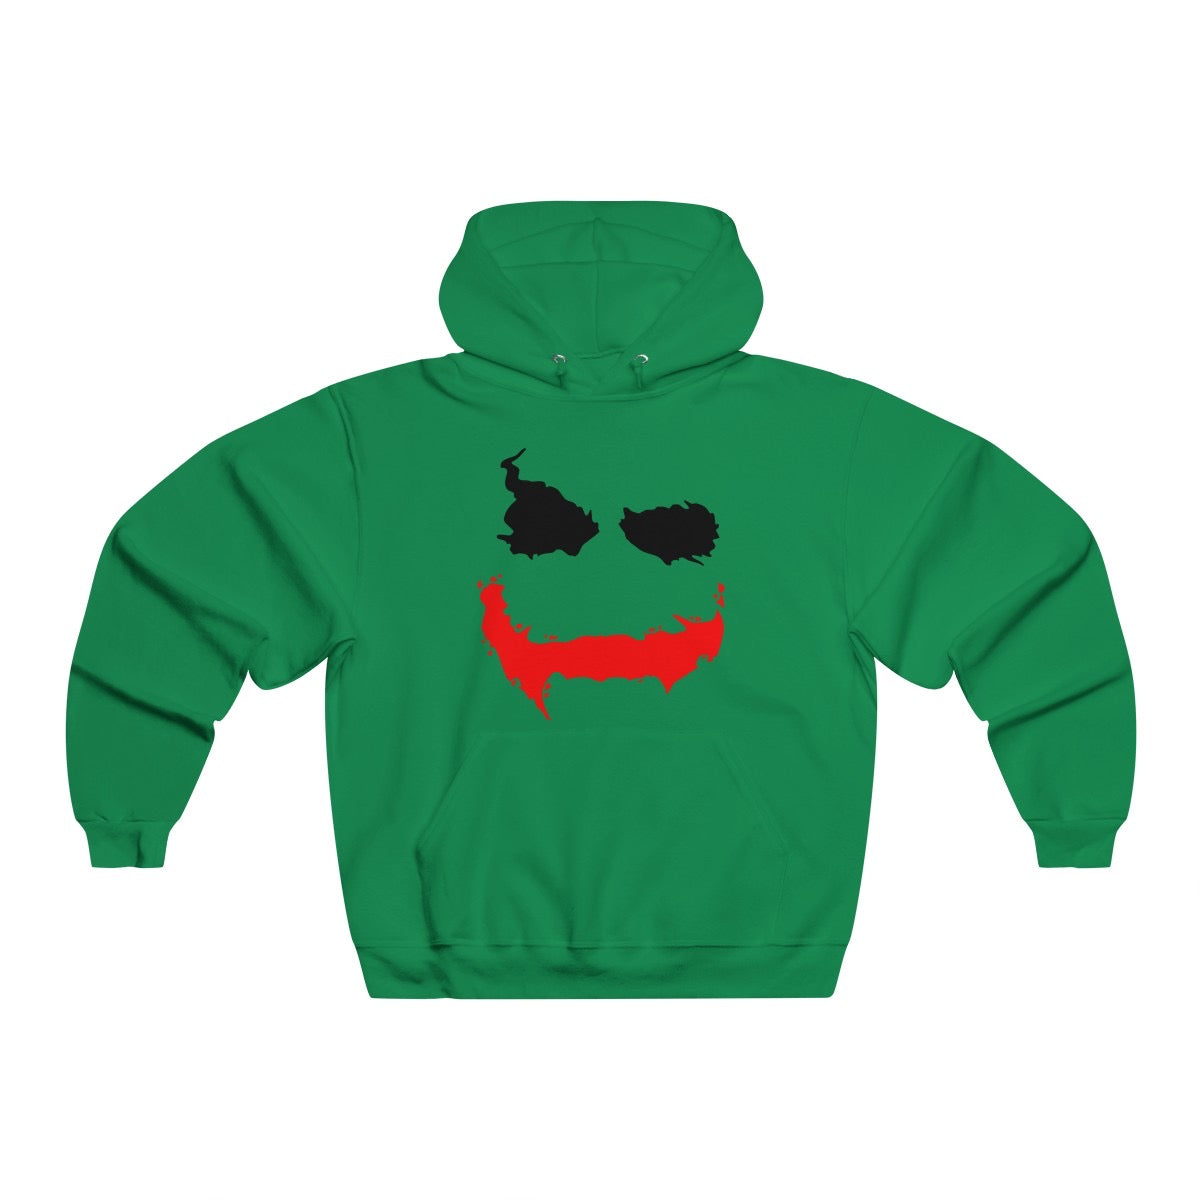 Joker Hoodies